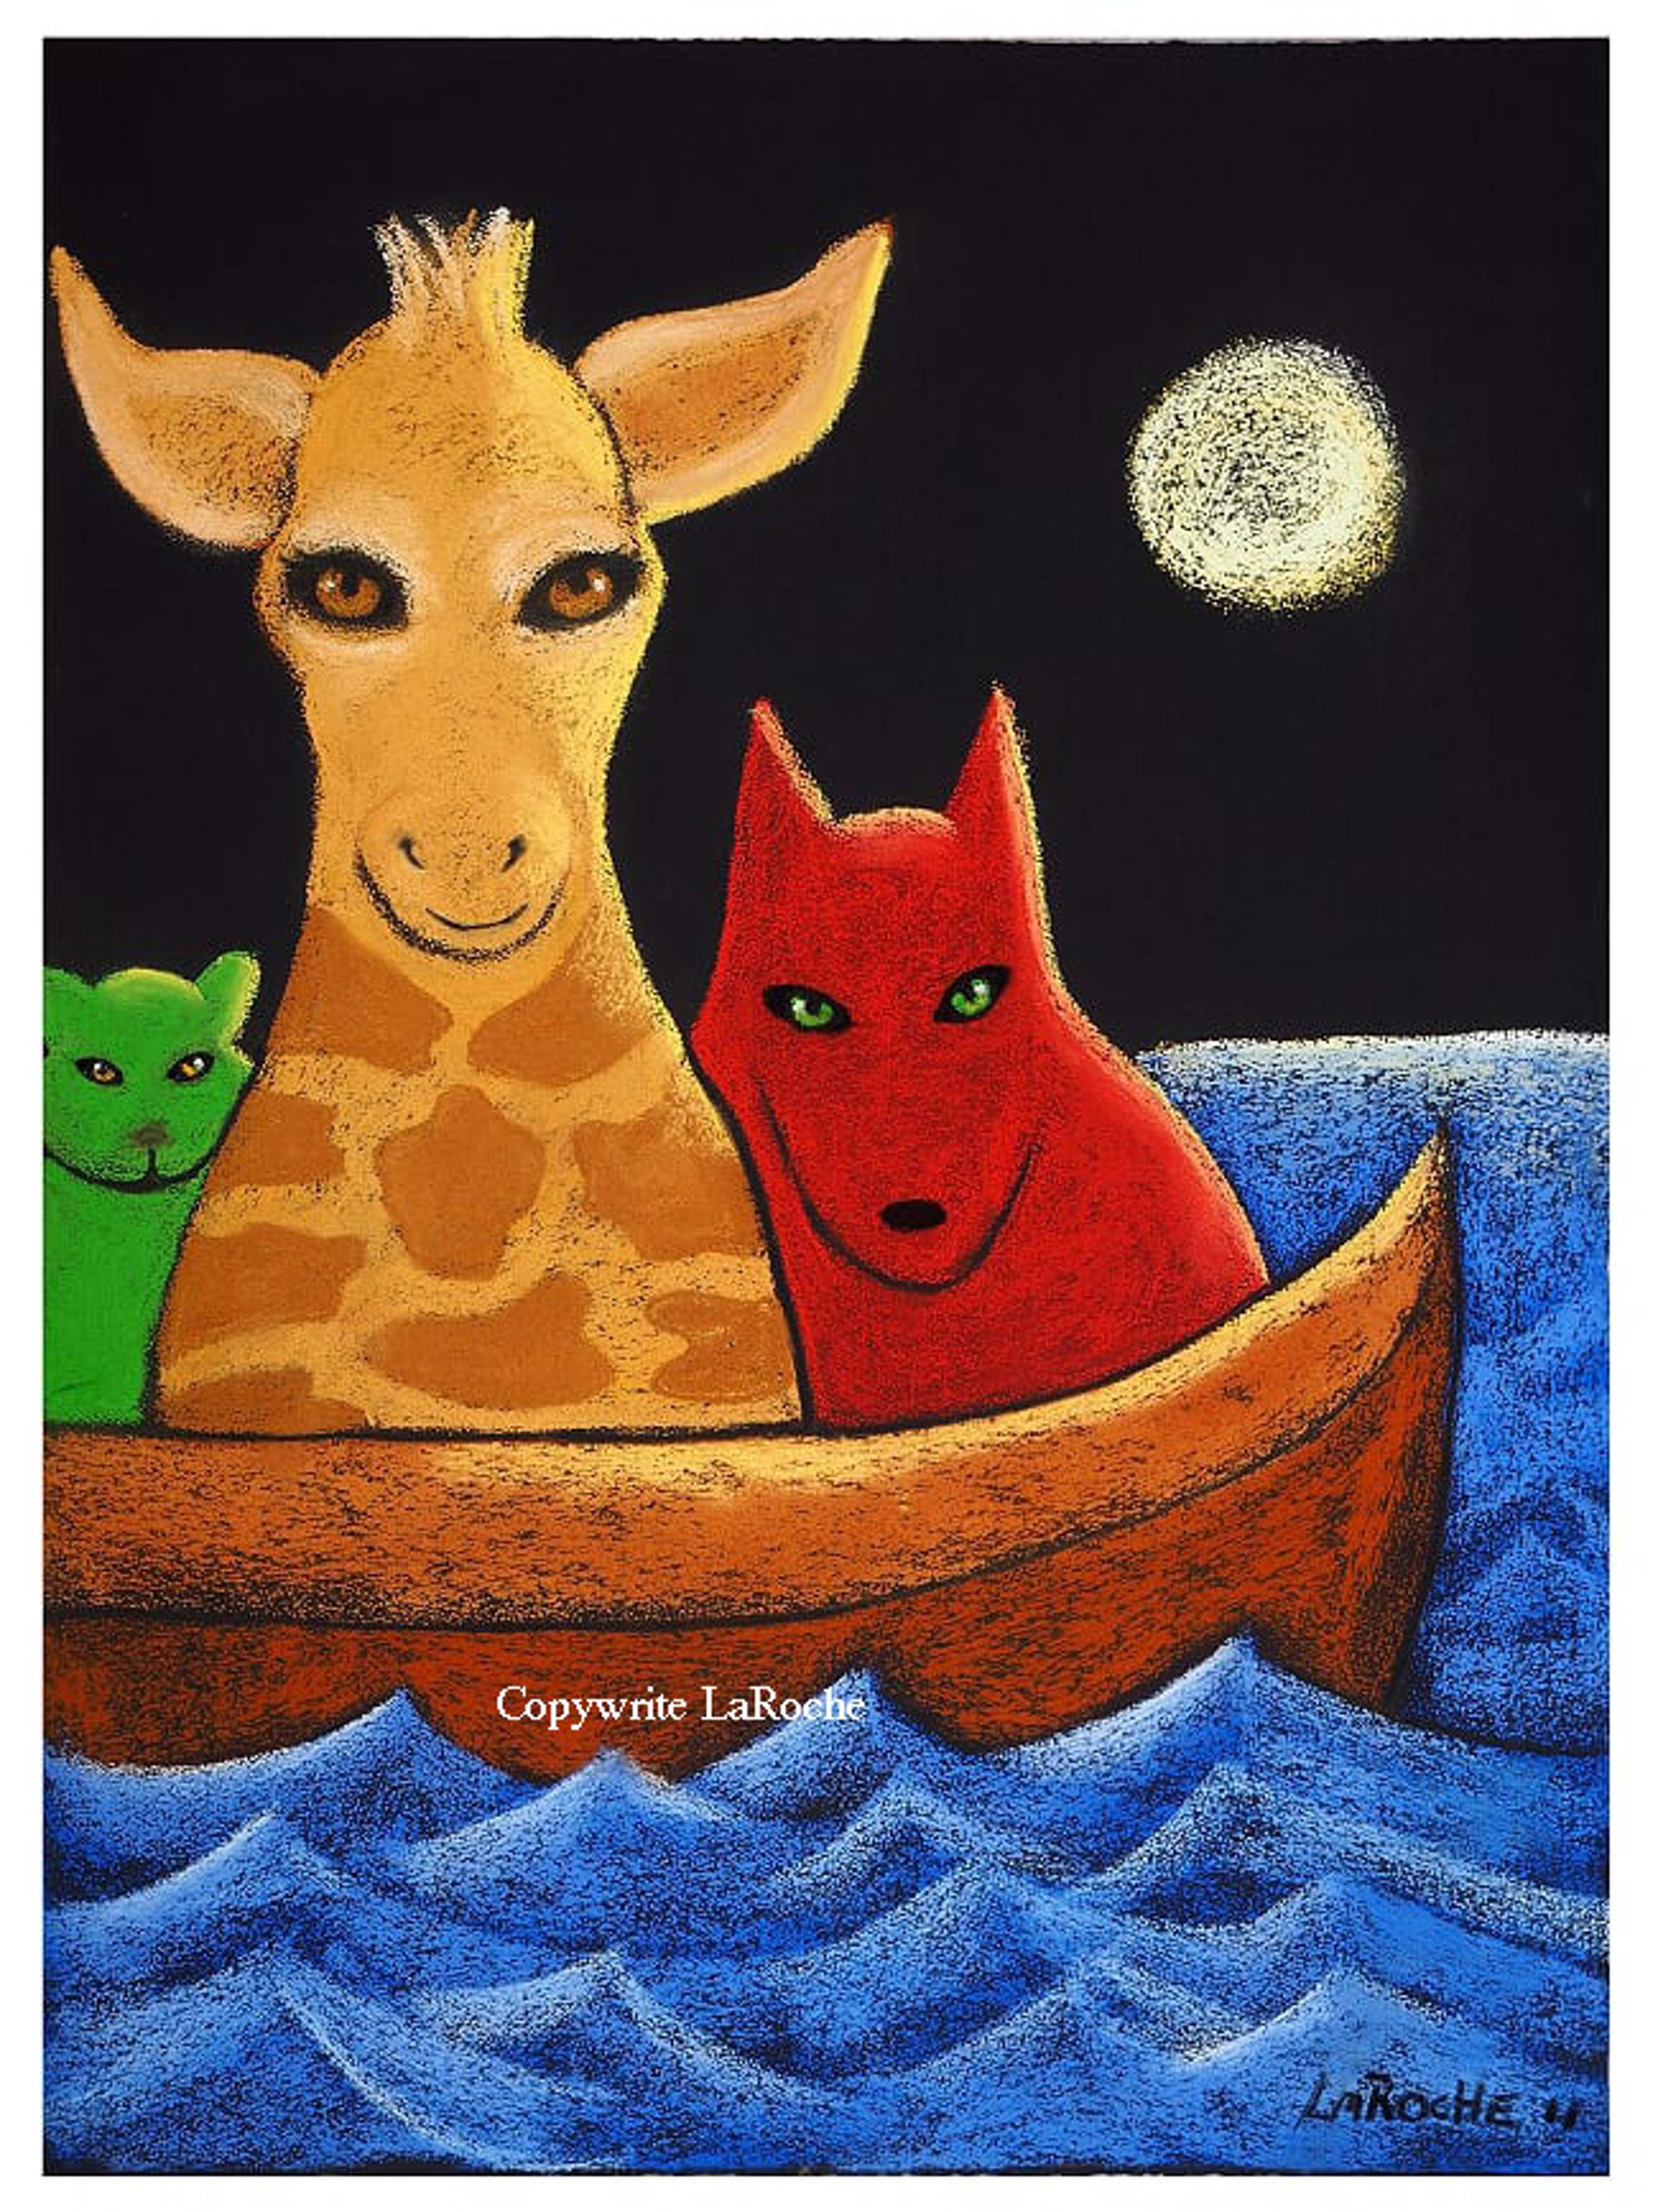 THE ARK / SAILING AWAY by Carole LaRoche